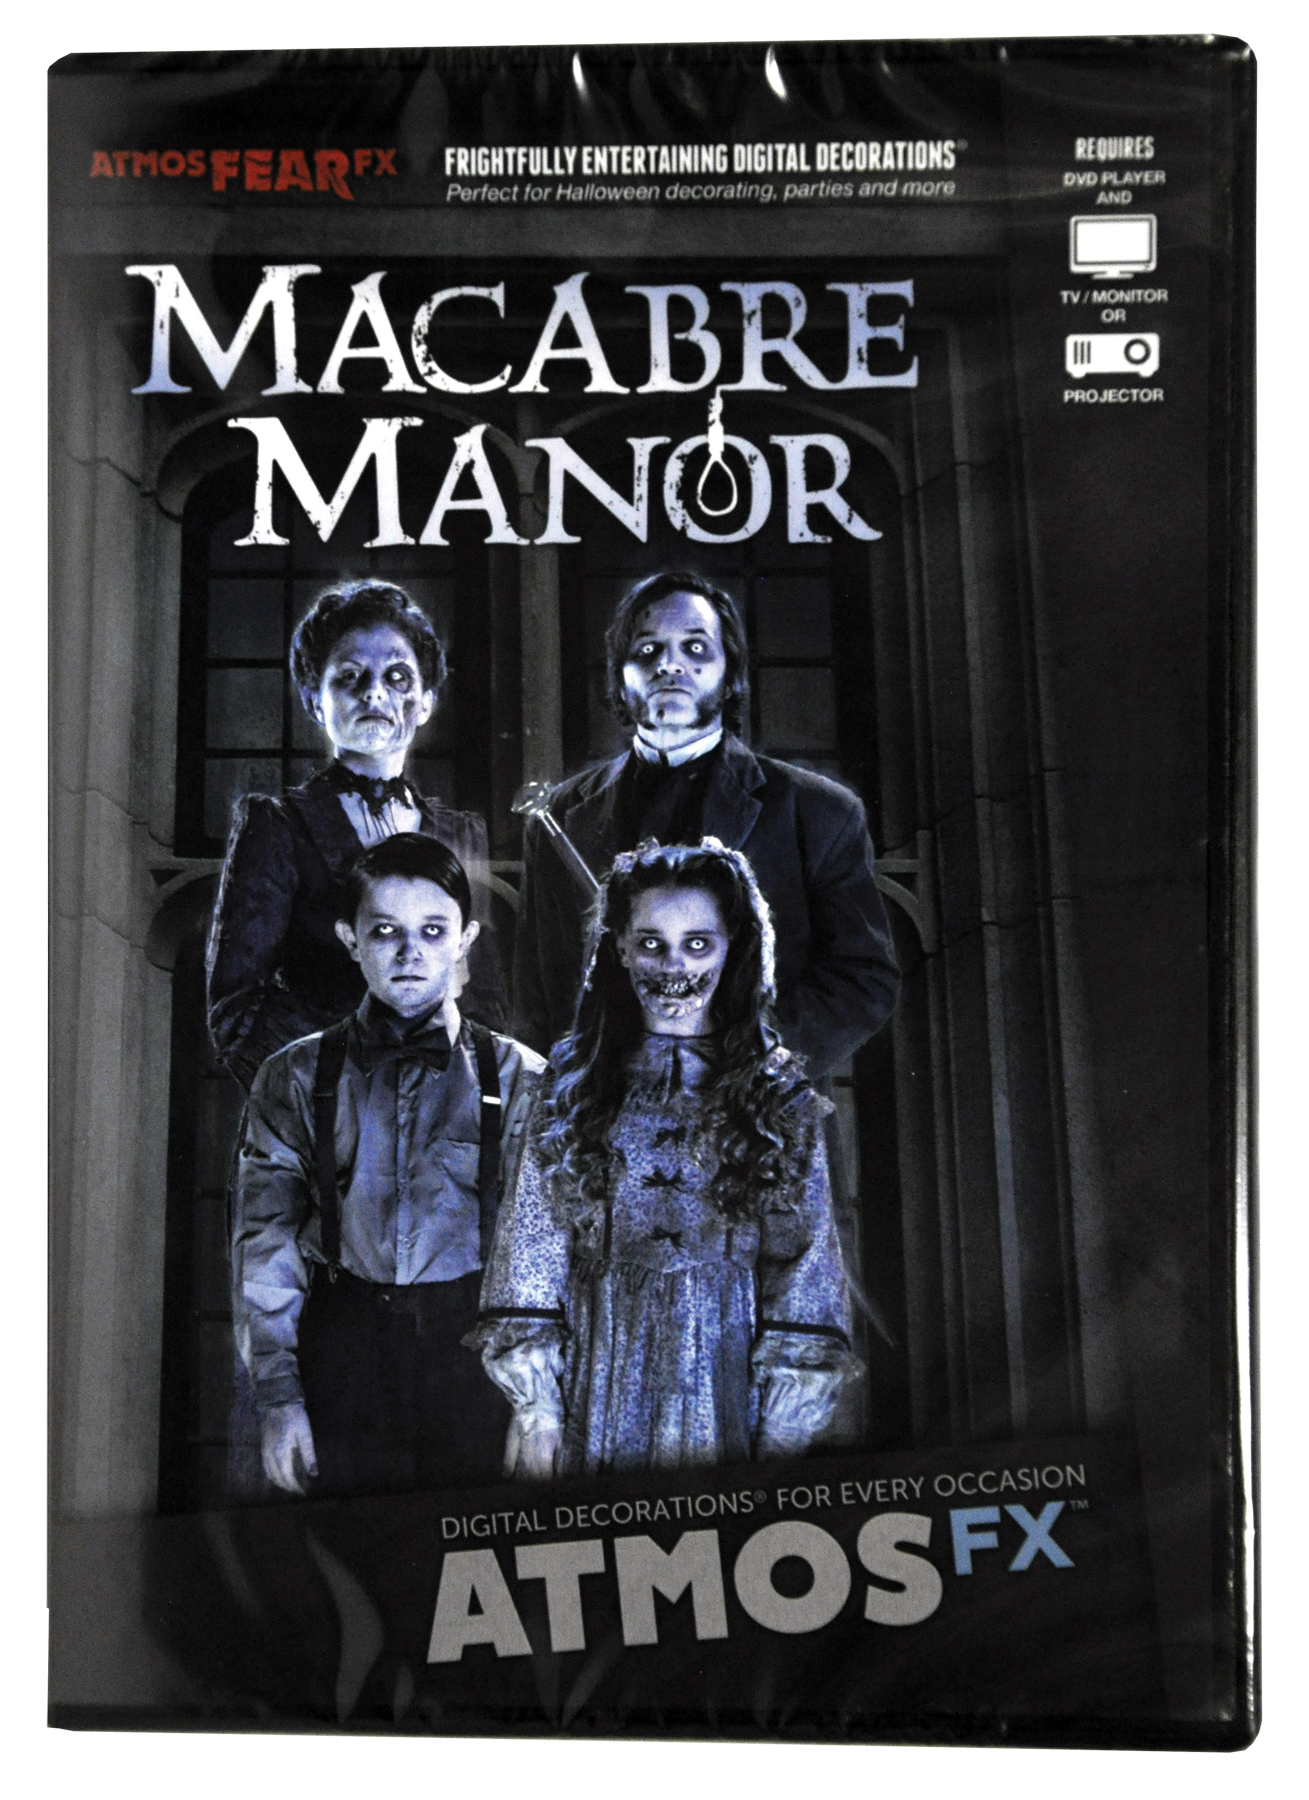 Featured Image for AtmosfearFX Macabre Manor DVD